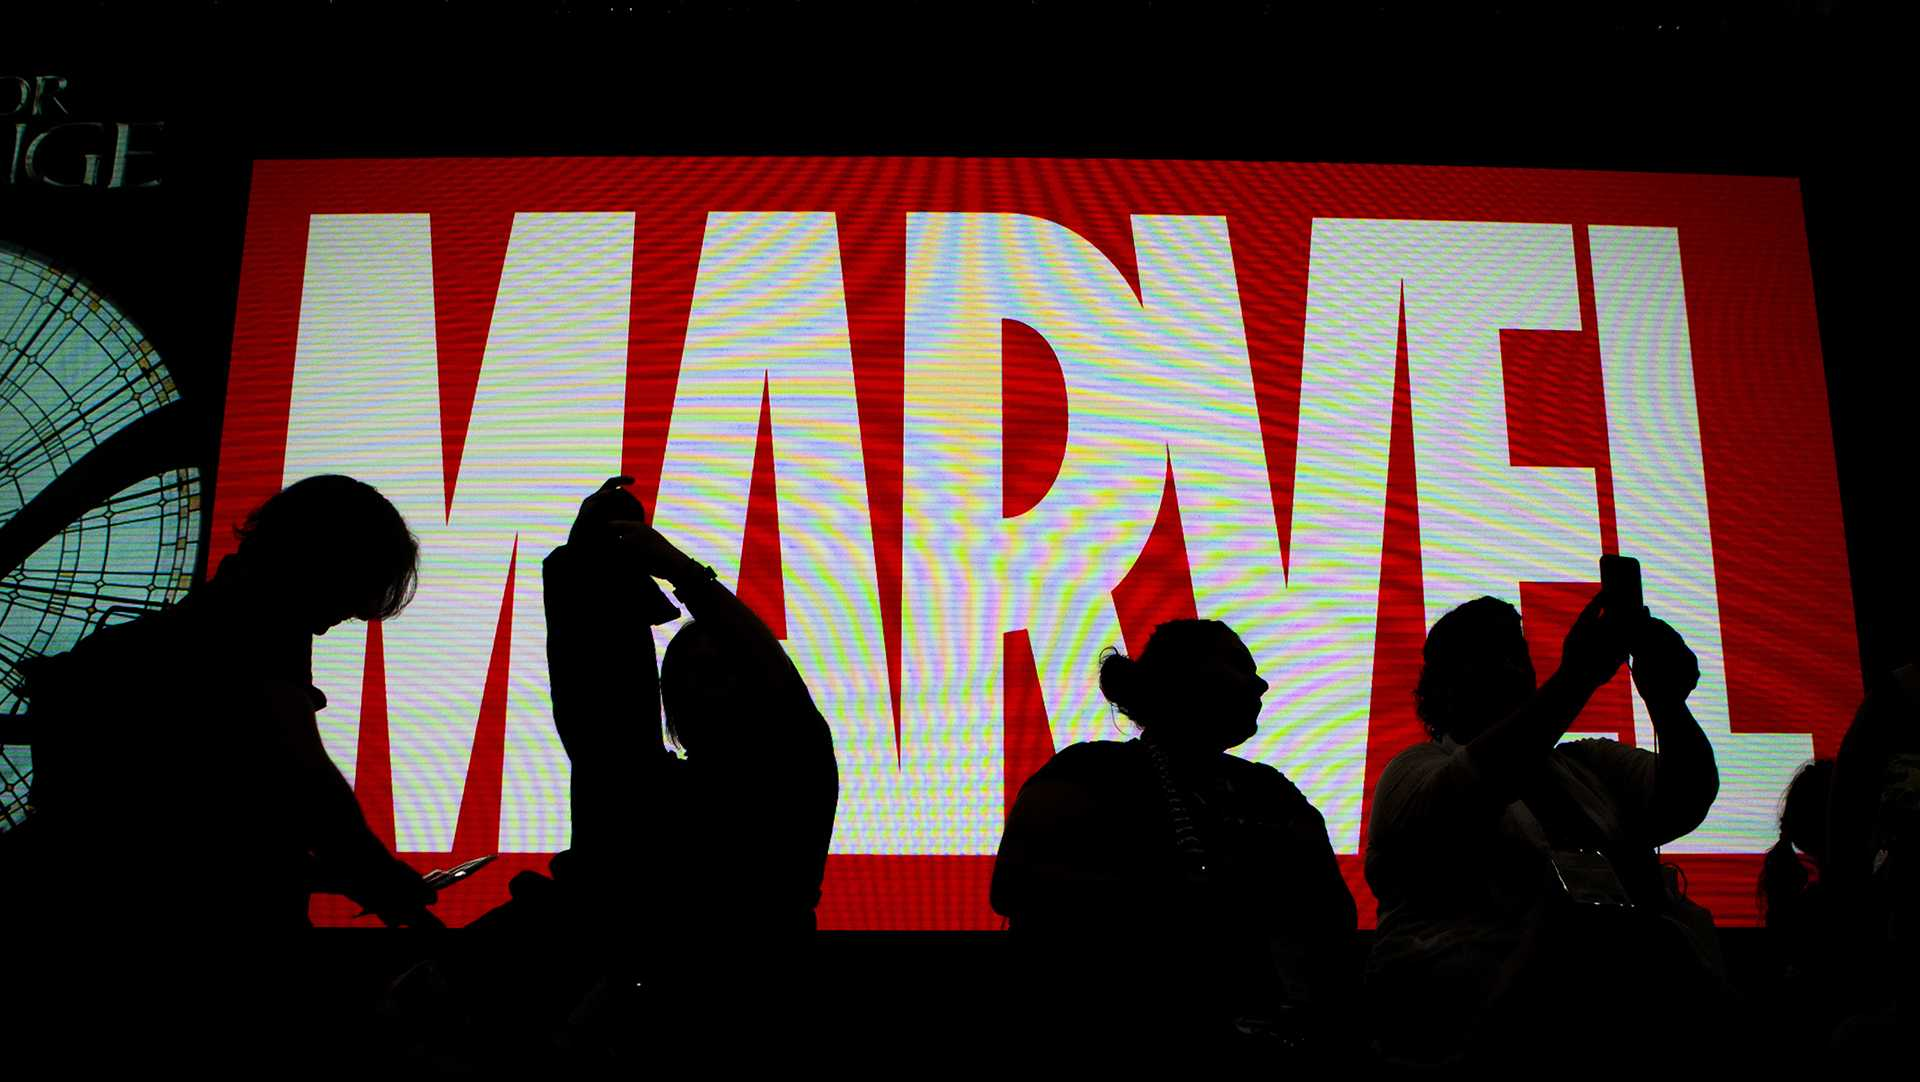 Attendees sit in front of an illuminated Marvel sign during the second day of Comic-Con 2016 on July 21, 2016 in San Diego. (Harrison Hill/Los Angeles Times/TNS)